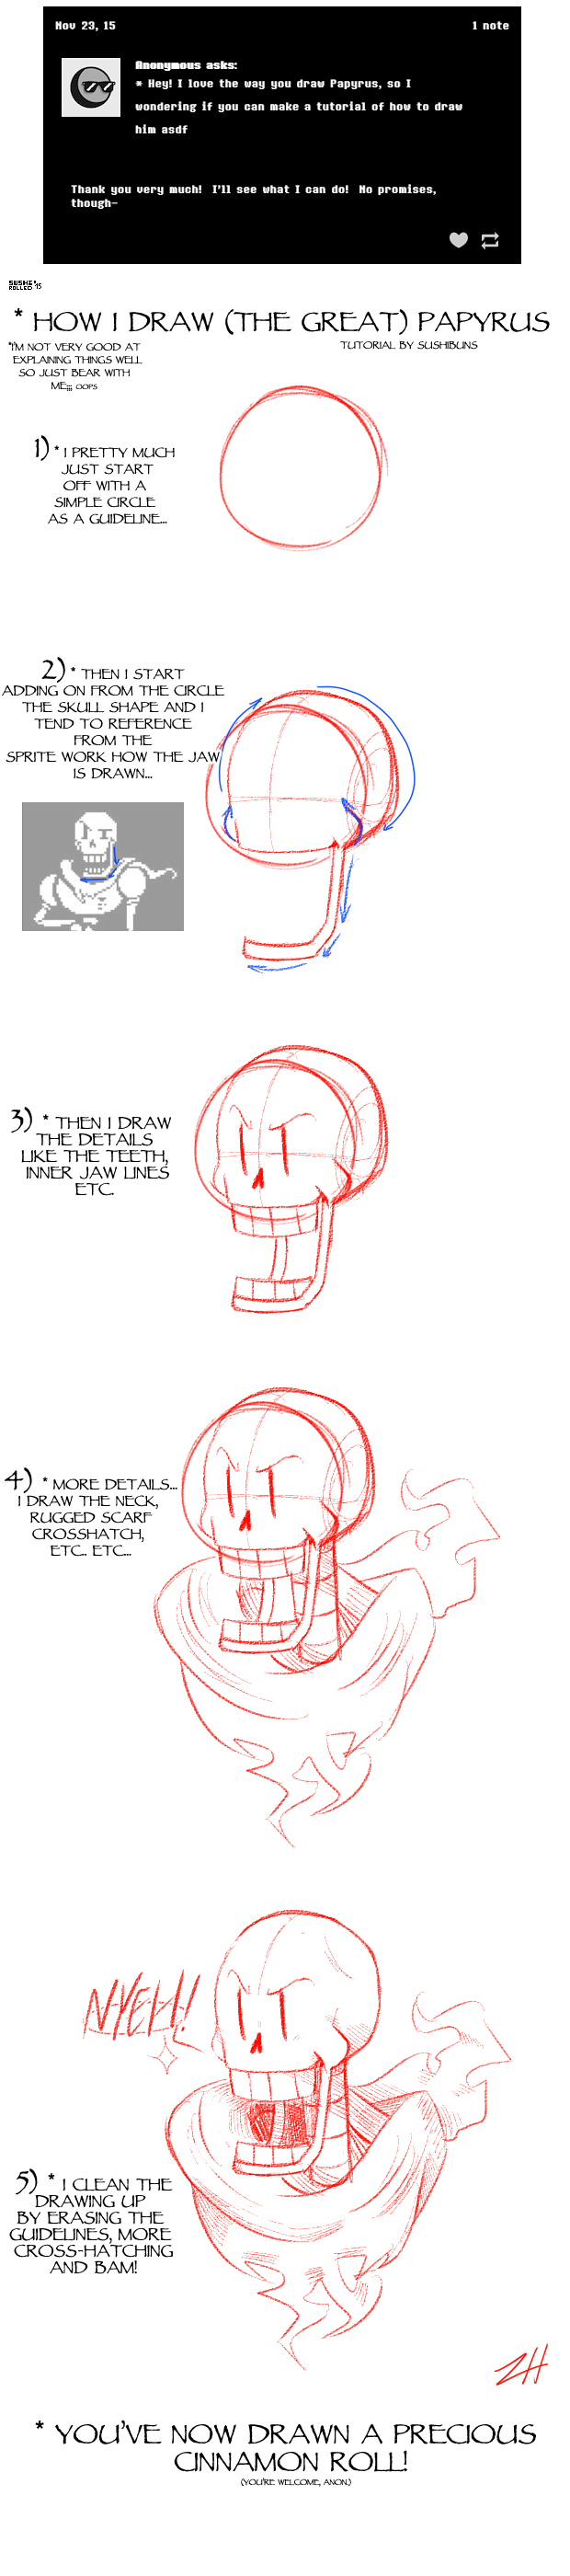 How I Draw The Great Papyrus By Sushirolled On DeviantArt